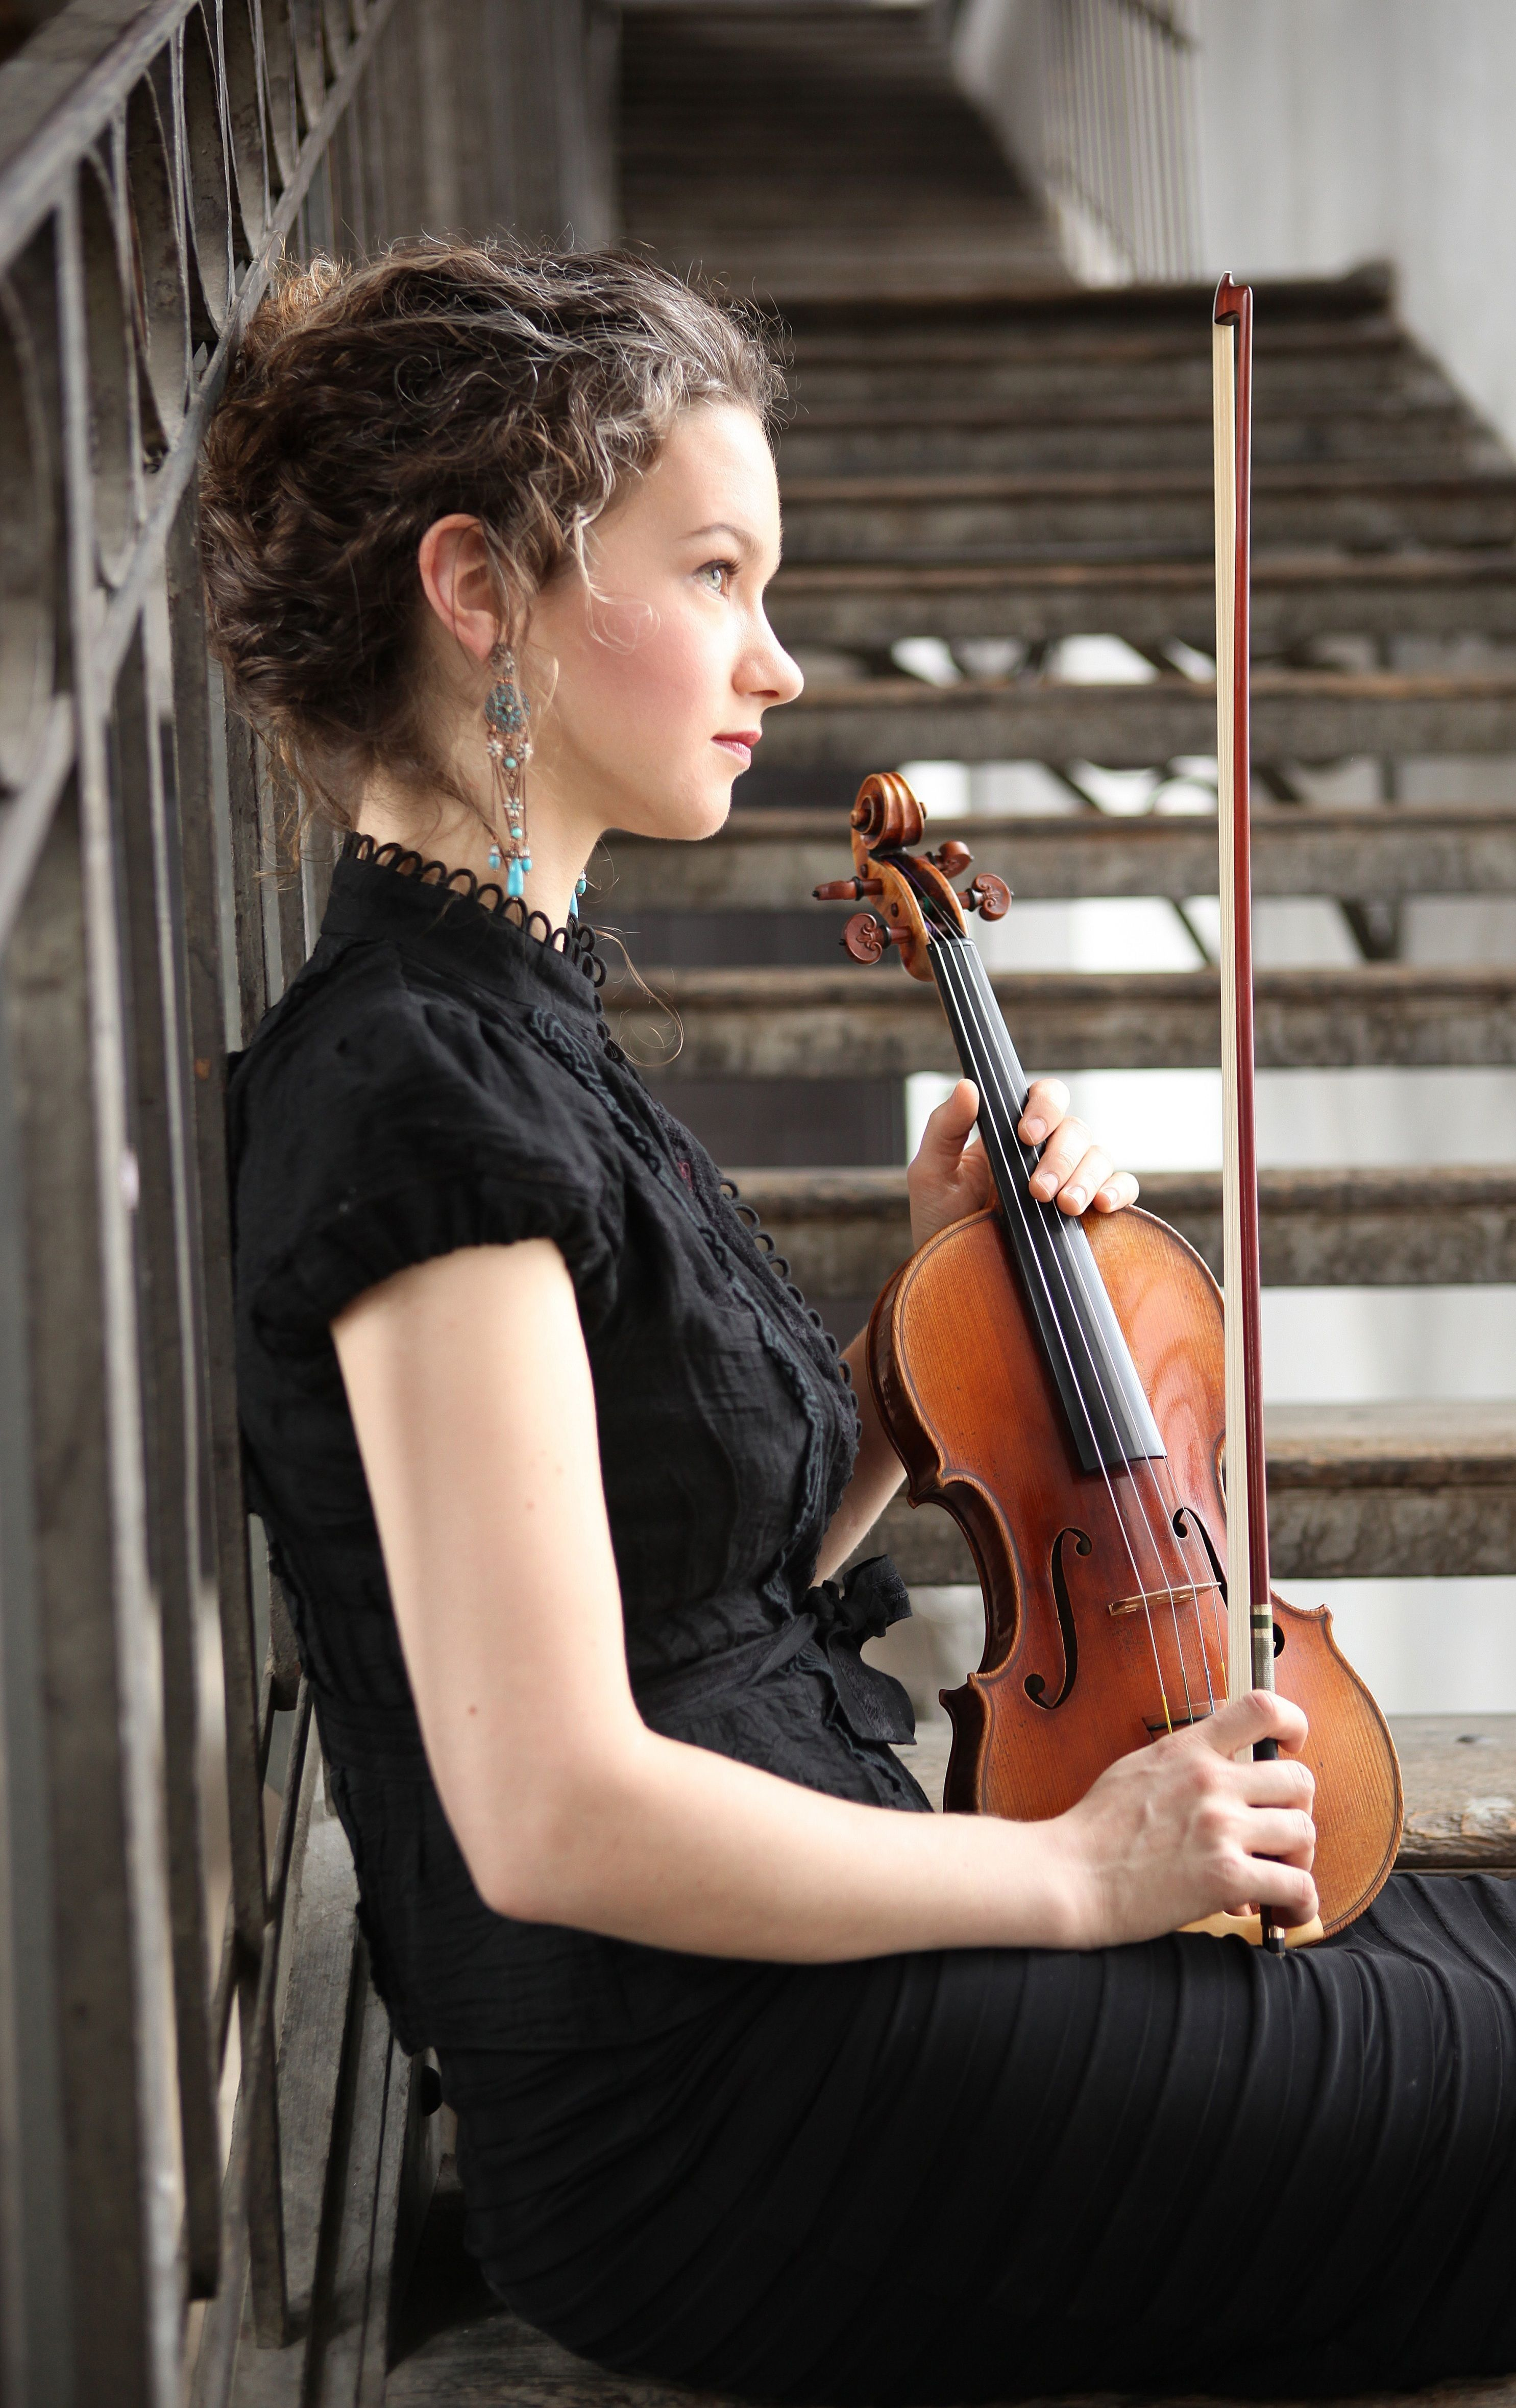 Hillery hahn with images violin senior pictures